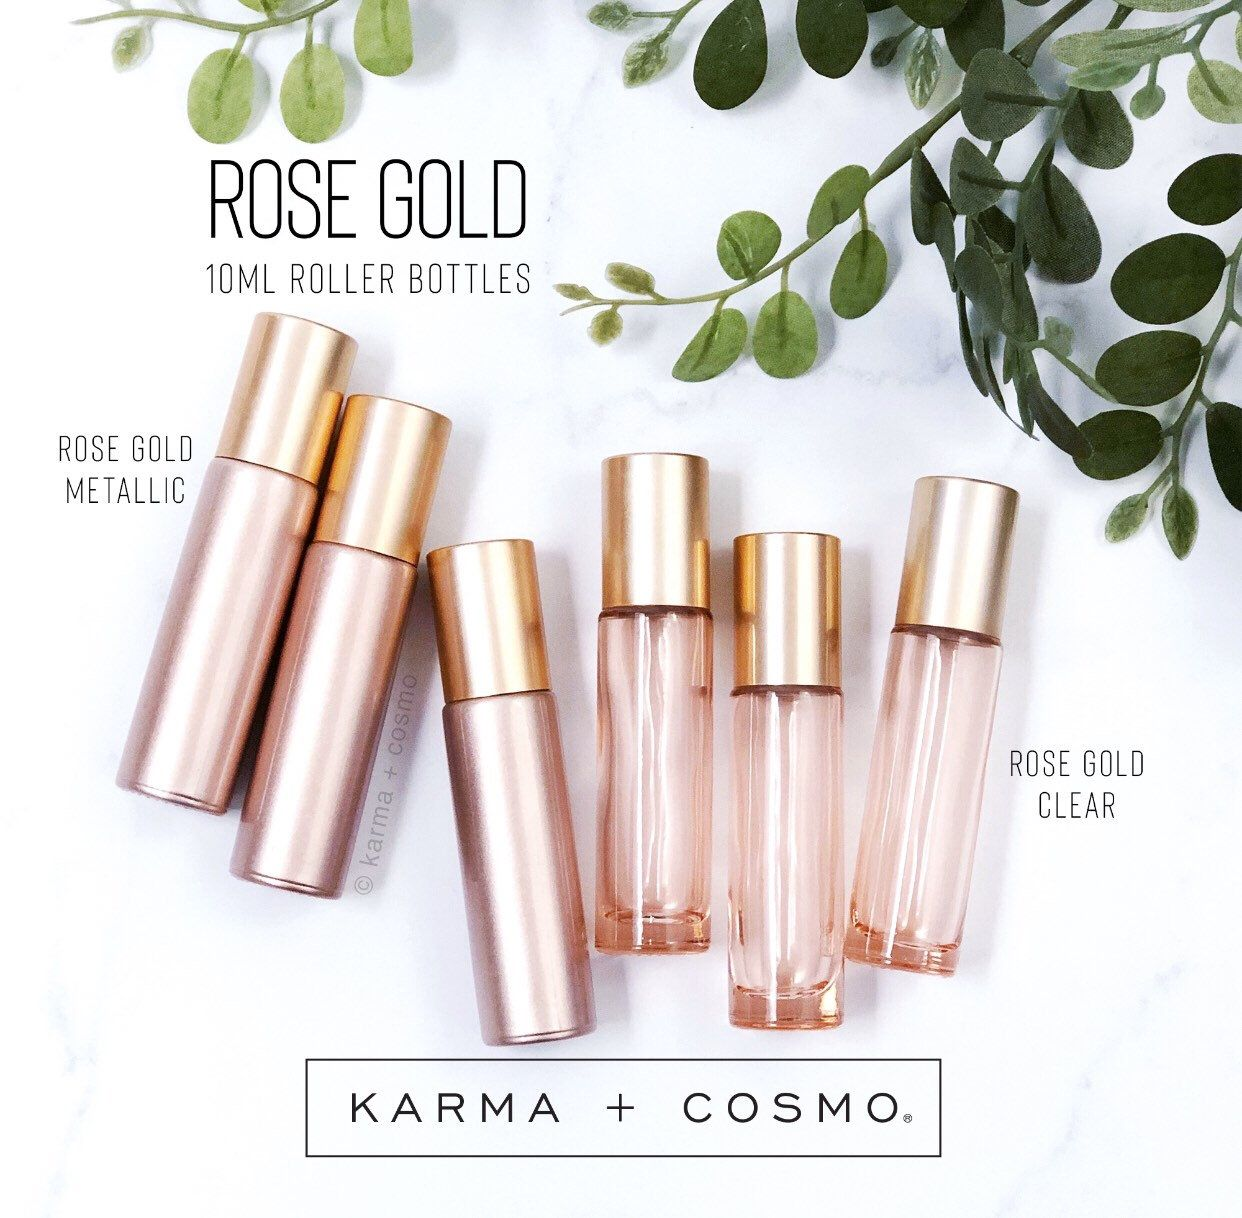 Rose Gold 10ml Essential Oil Roller Bottles Set Of 6 Etsy Essential Oil Roller Bottle Essential Oil Roller Essential Oil Roller Bottle Recipes